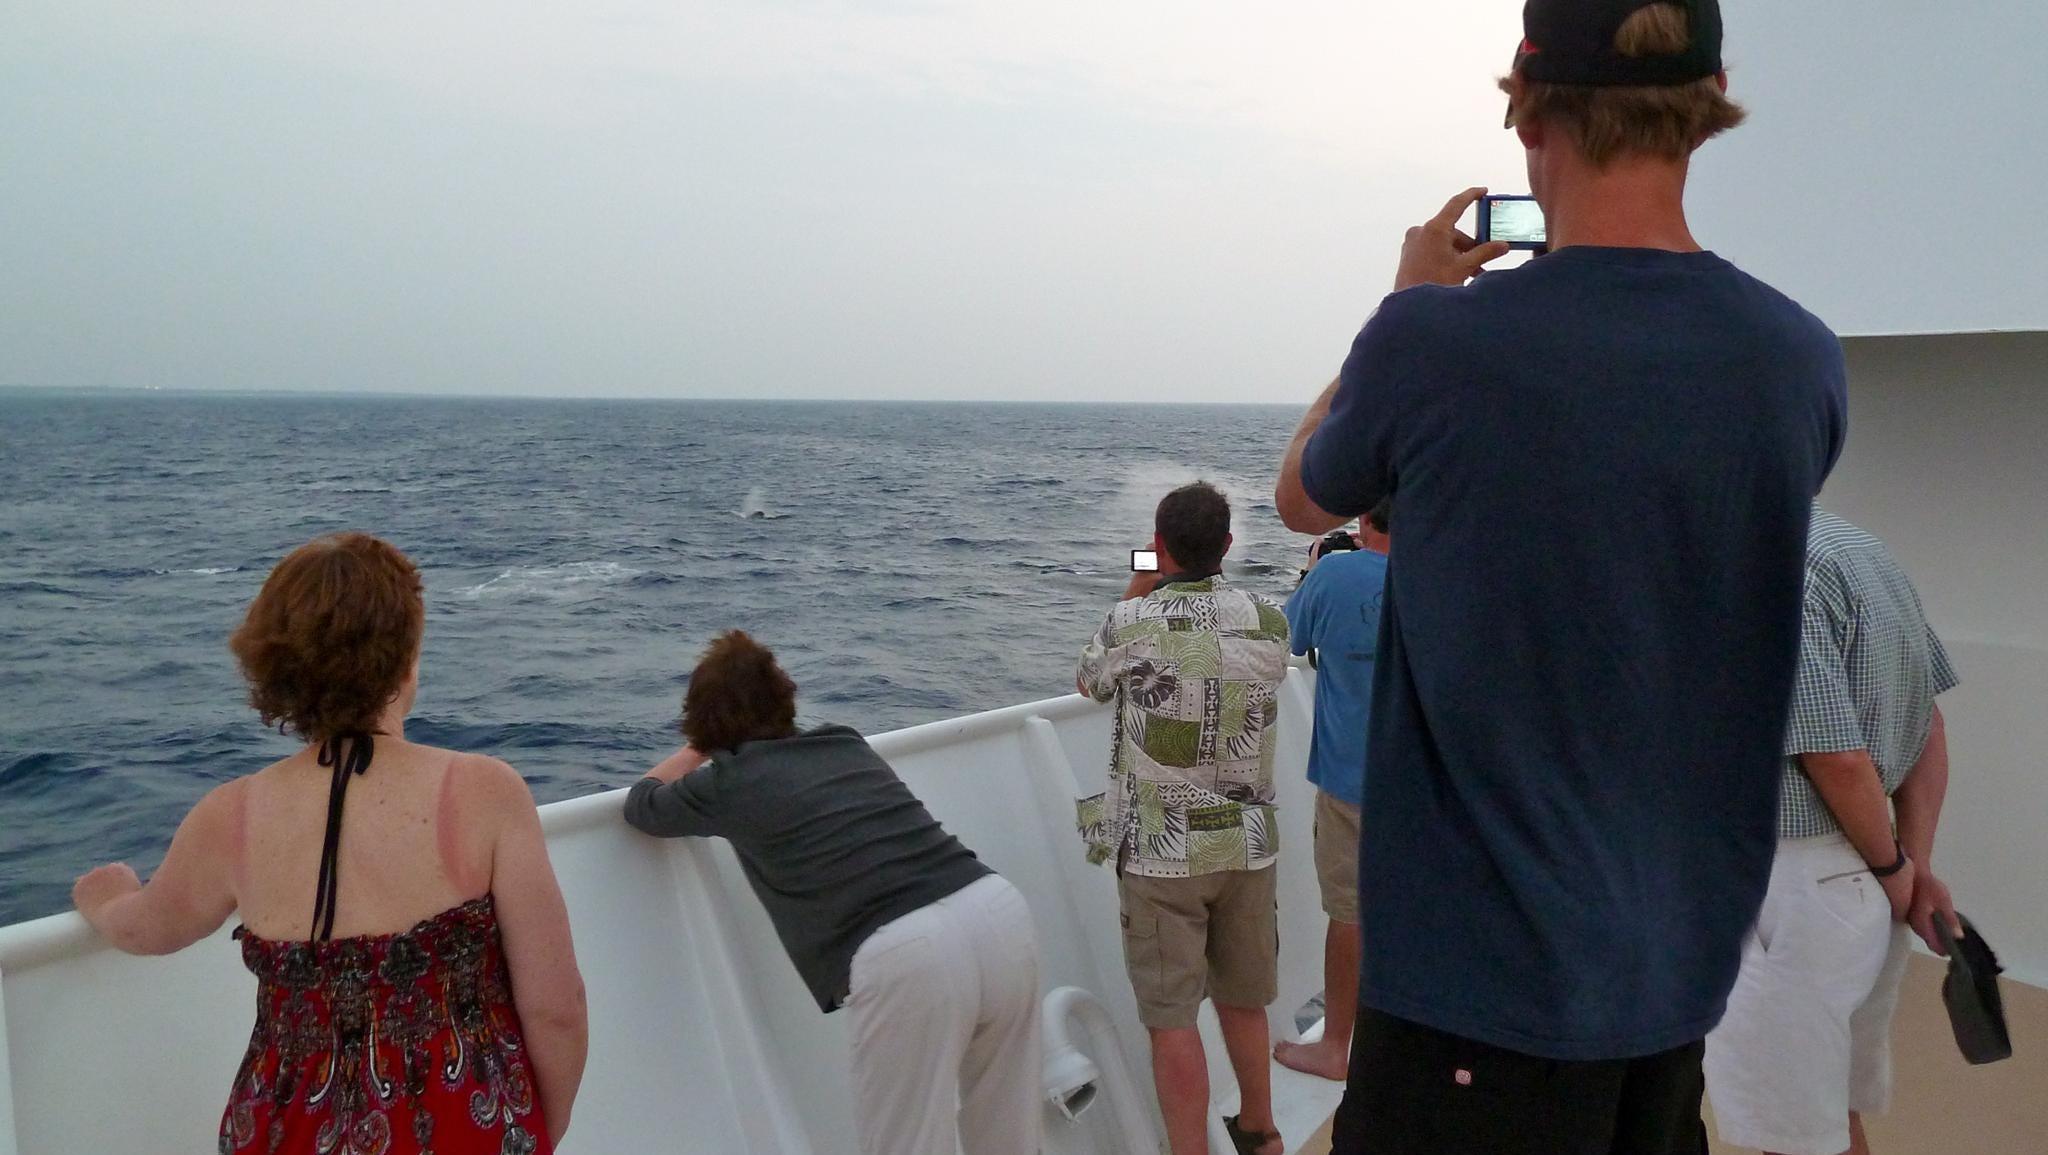 Un-Cruise ships have flexible itineraries, allowing time to veer off course to view whales and other marine life.